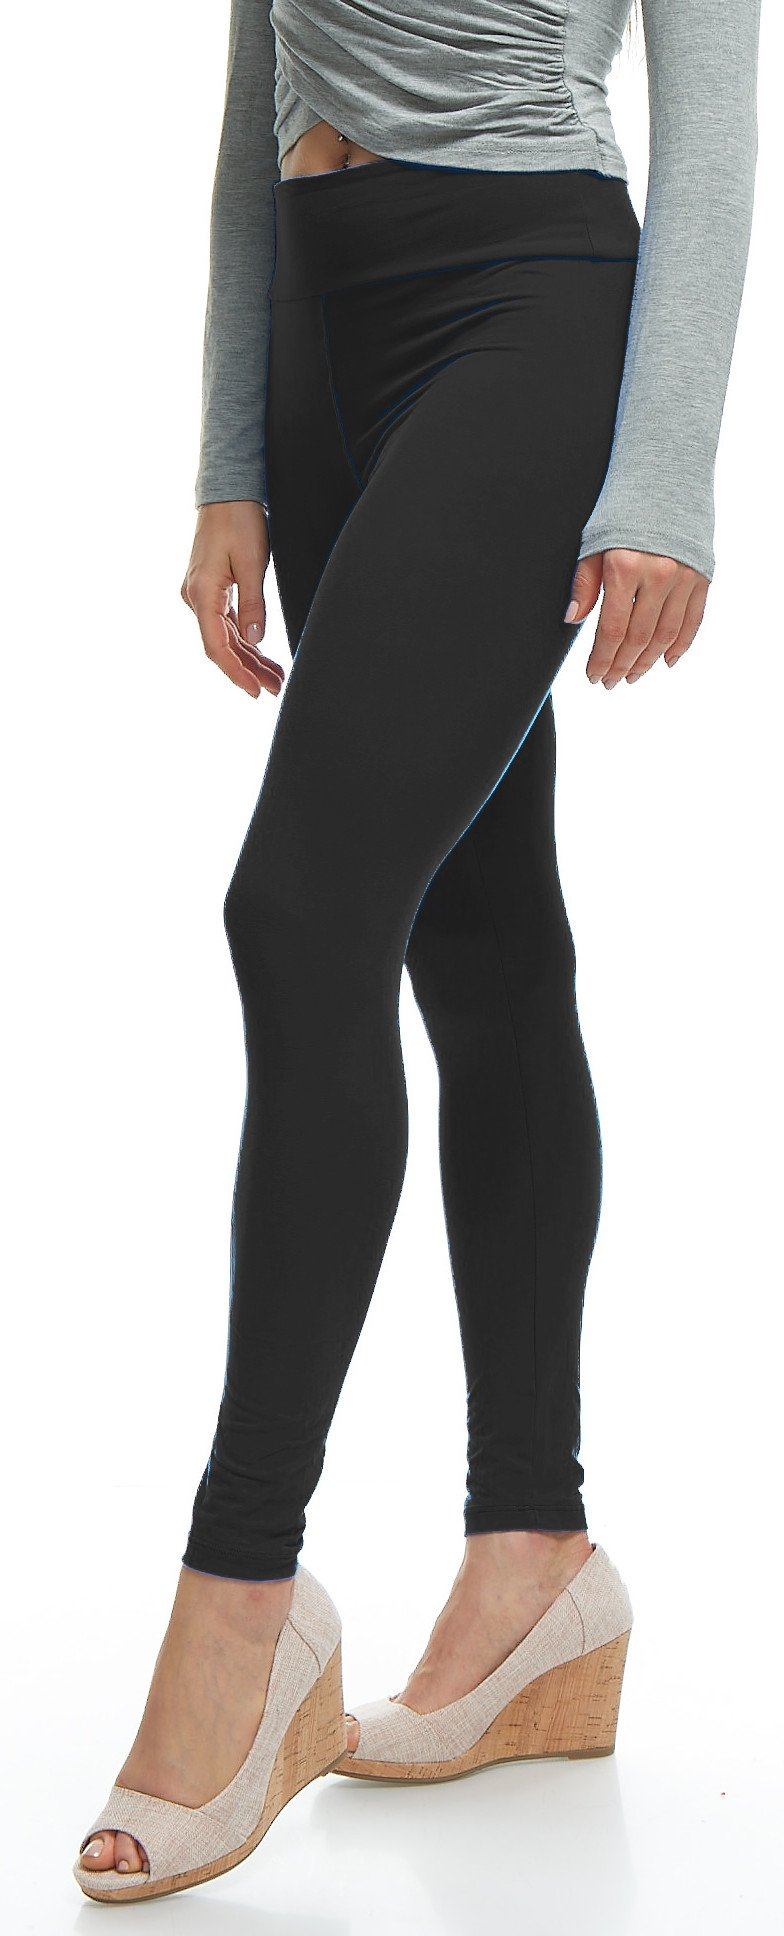 LMB Yoga Leggings Buttery Soft Material - Variety of Colors - Black by LMB (Image #5)